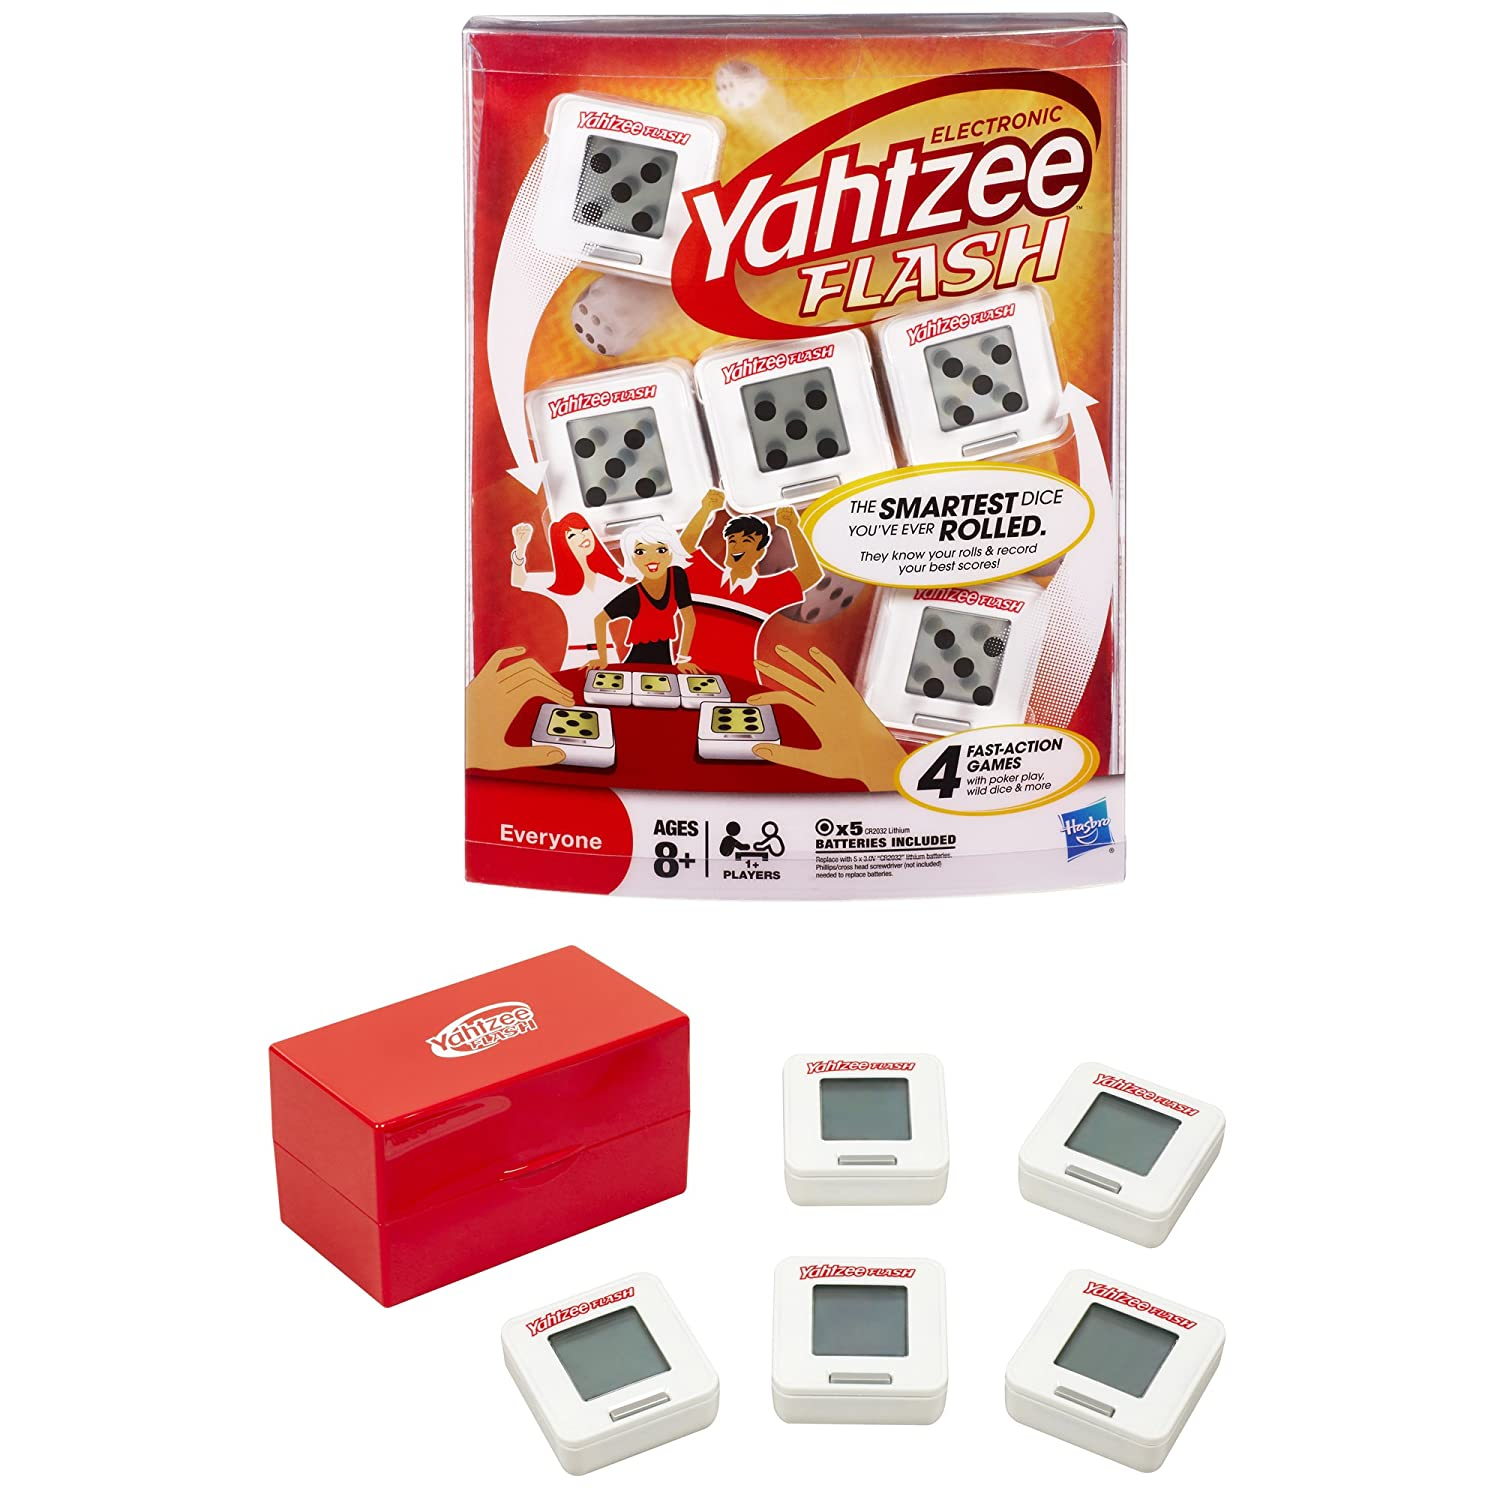 Amazon Electronic Yahtzee Flash Toys Games